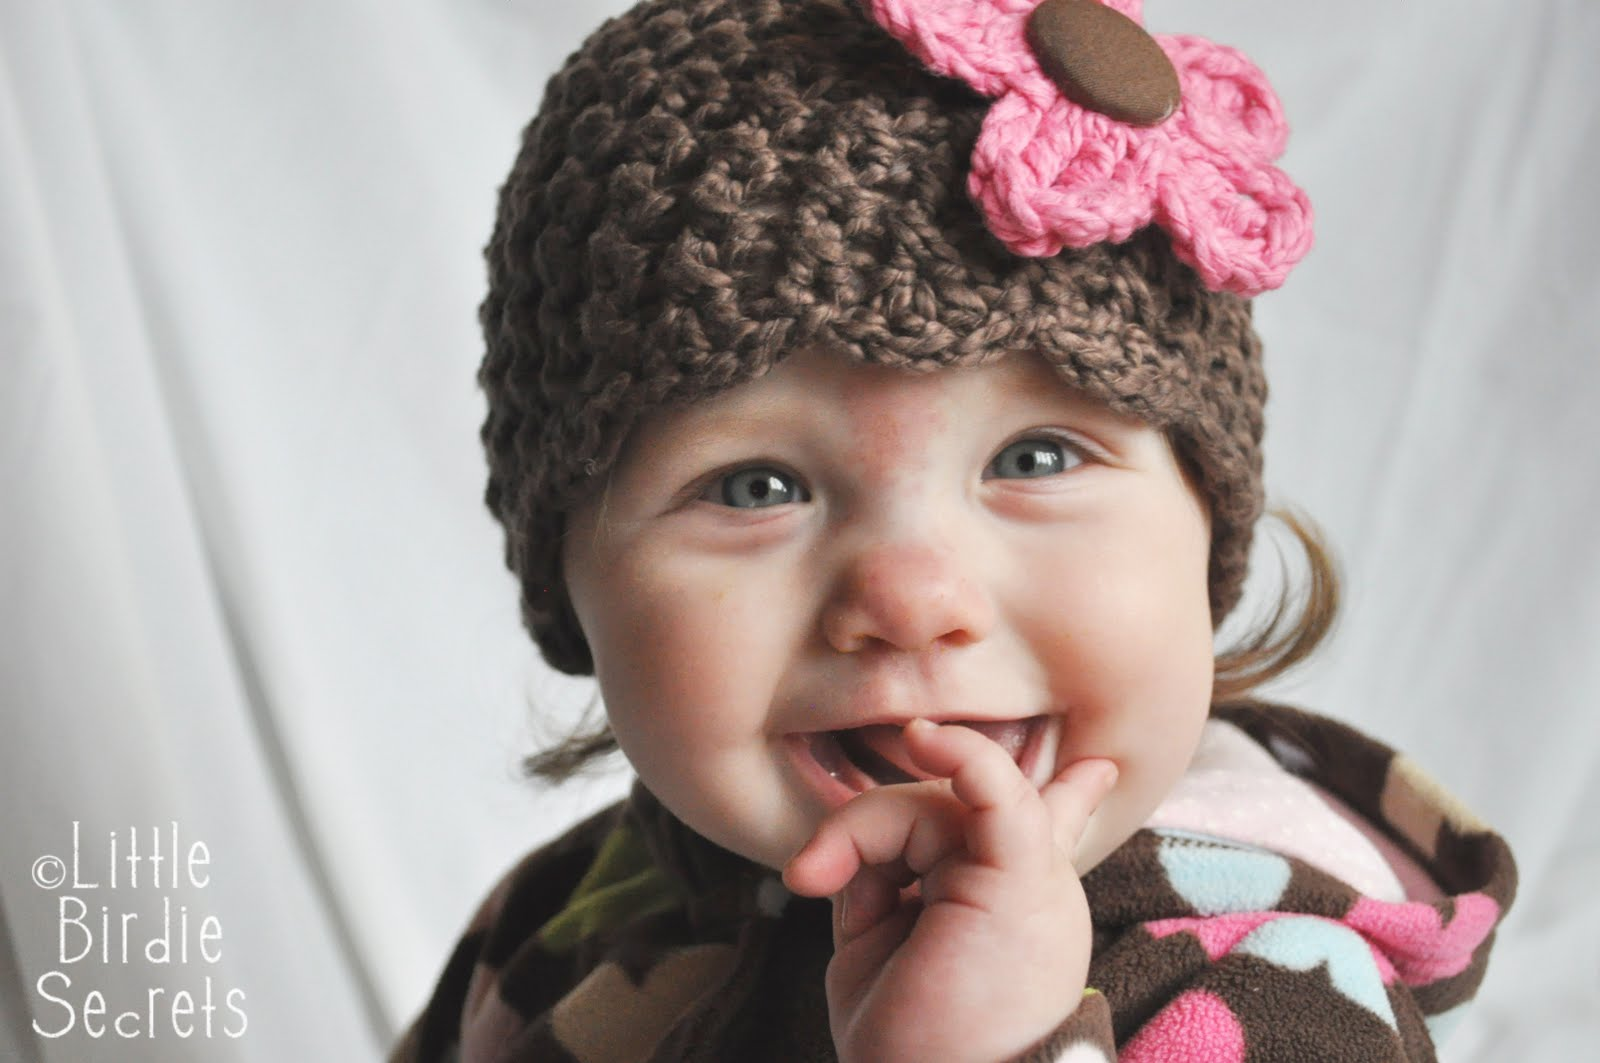 Free Crochet Patterns For Baby And Toddler Hats : crochet hat pattern-Knitting Gallery